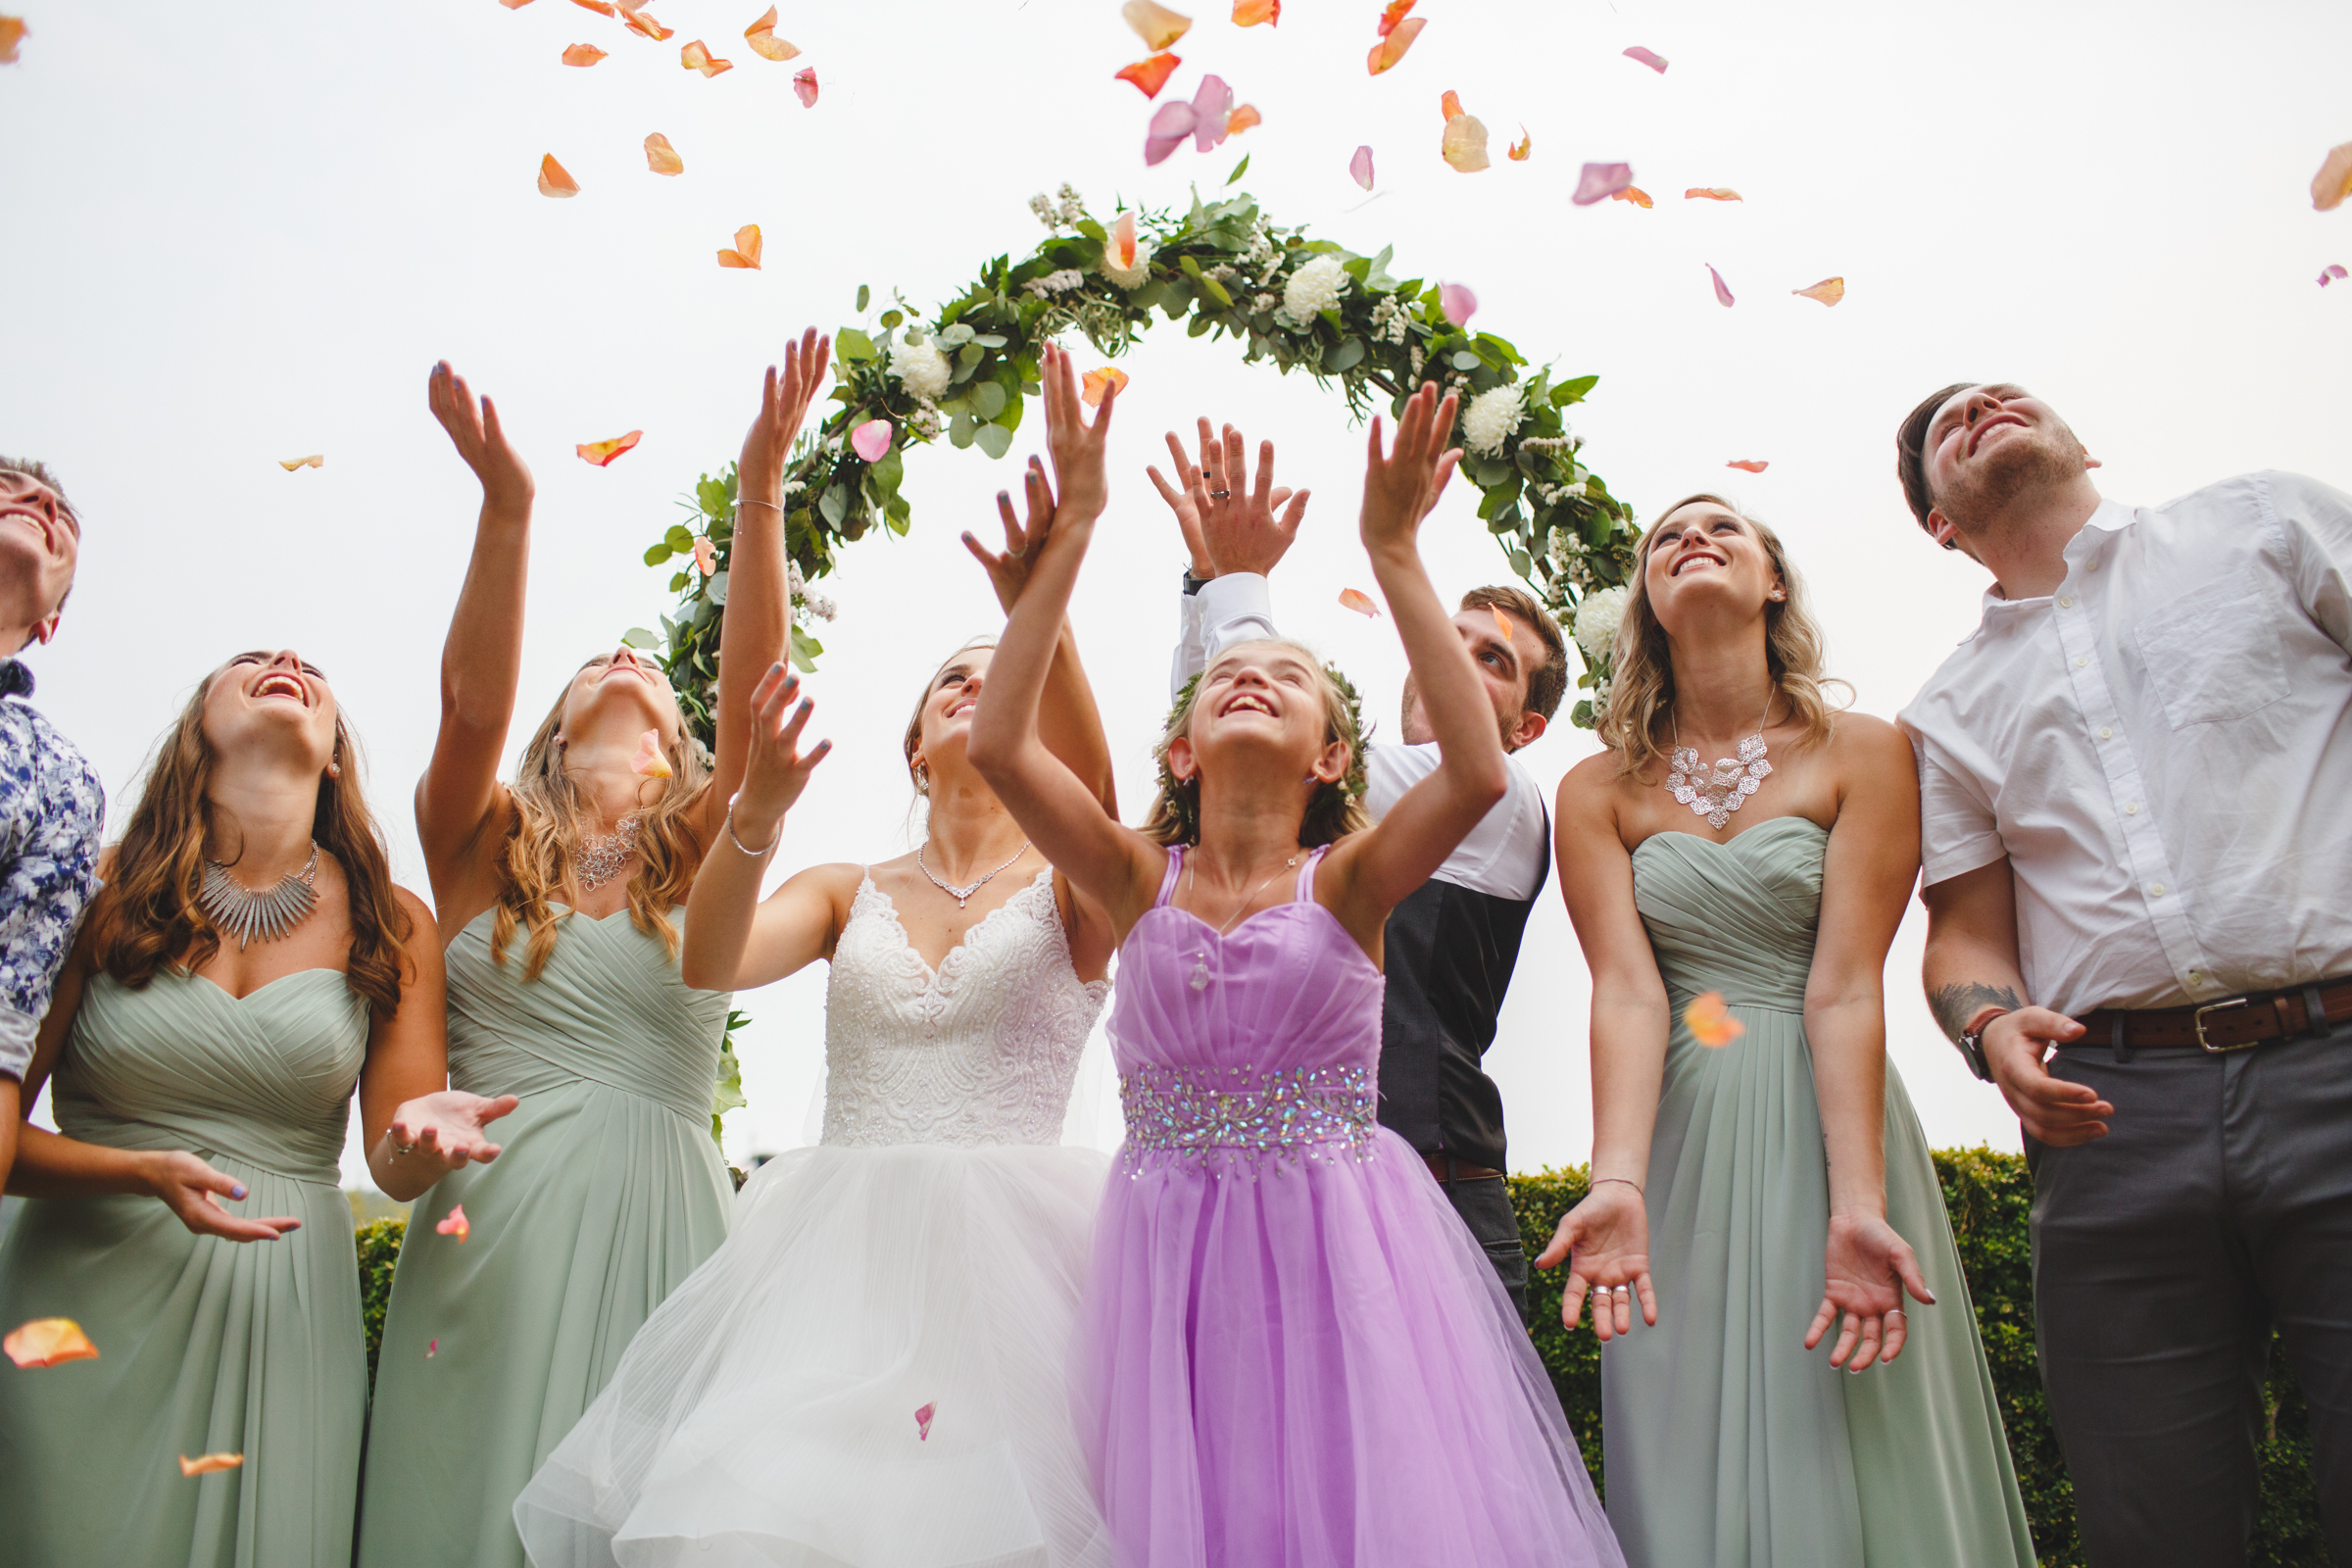 Bridal party raise hands to shower of petals - photo by Satya Curcio Photography